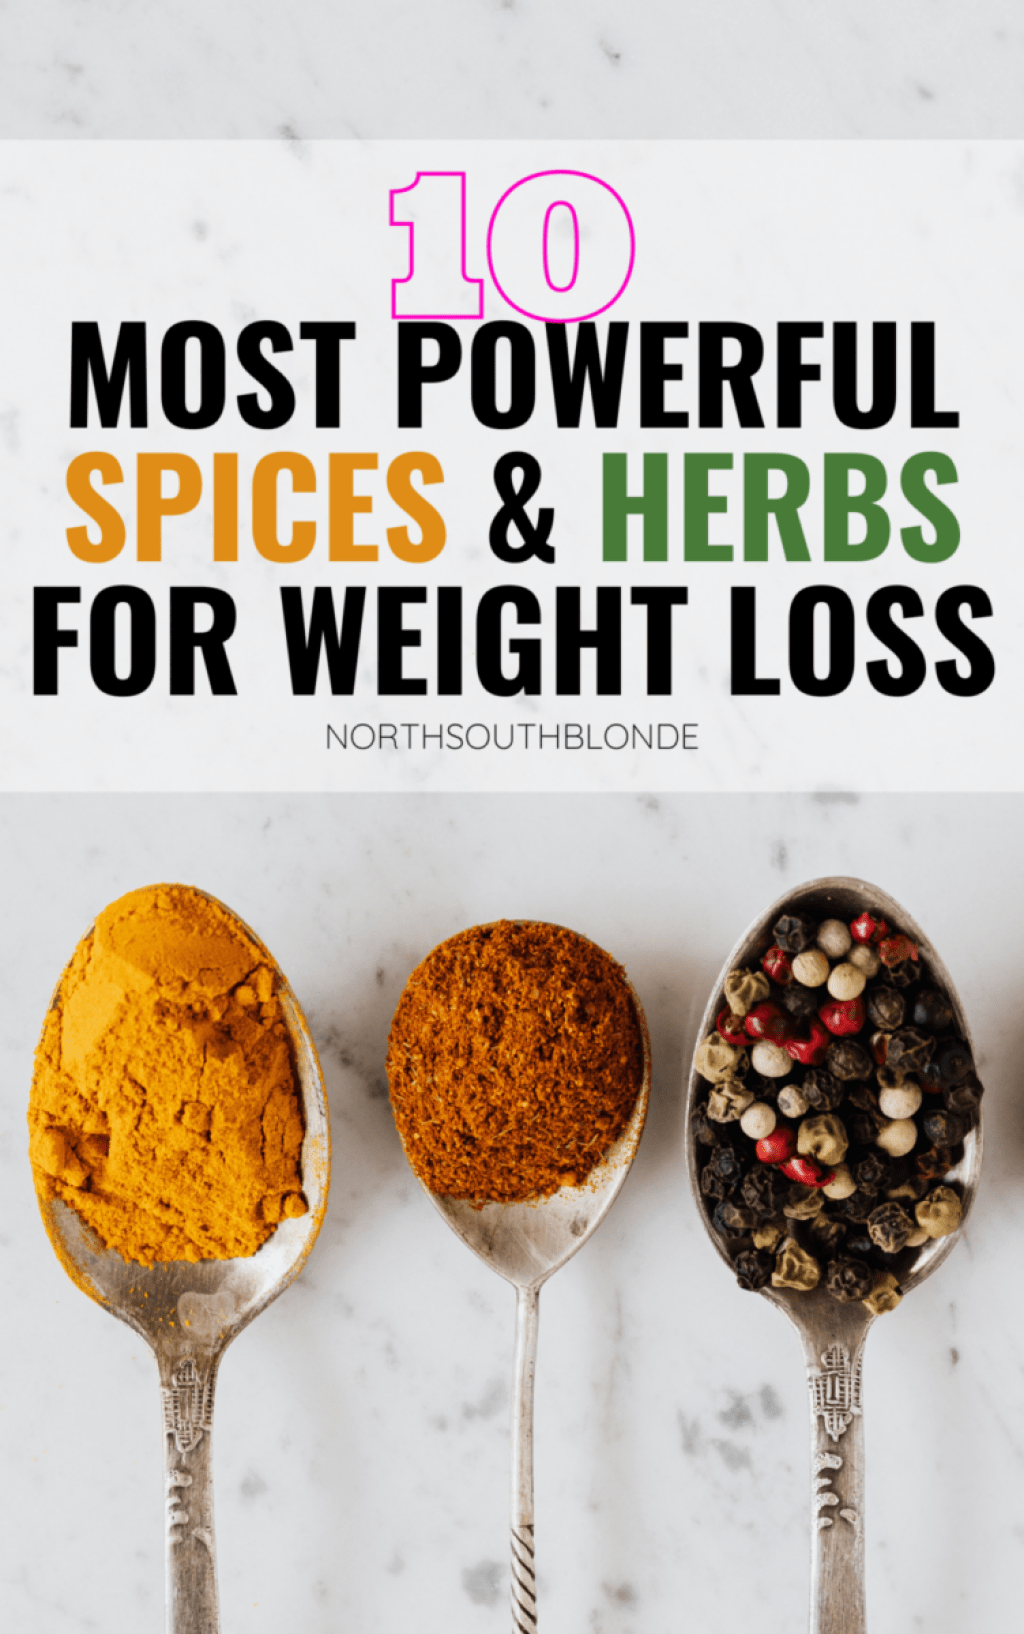 Kickstart your metabolism, fight the flu, fight aging, and detoxify your body with these powerful, flavourful herbs and spices for weight loss. Lose Weight | Burn Fat | Heal The Body | Holistic Nutrition | Medicinal Benefits | Anti Aging | Anti Inflammatory | Flu Fighting | Mental Health | Immune Boosting | Health Benefits | Superfood | Recipes | Cooking | Baking | Food and Drink |